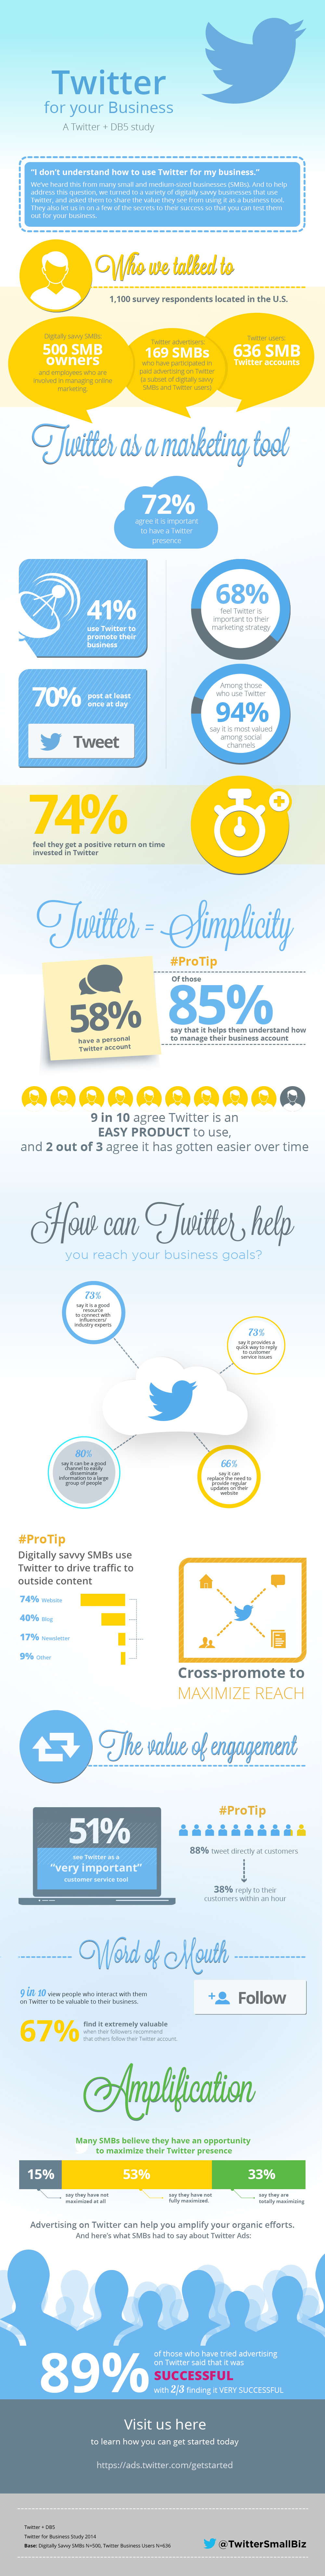 twitter-business-marketing-tool